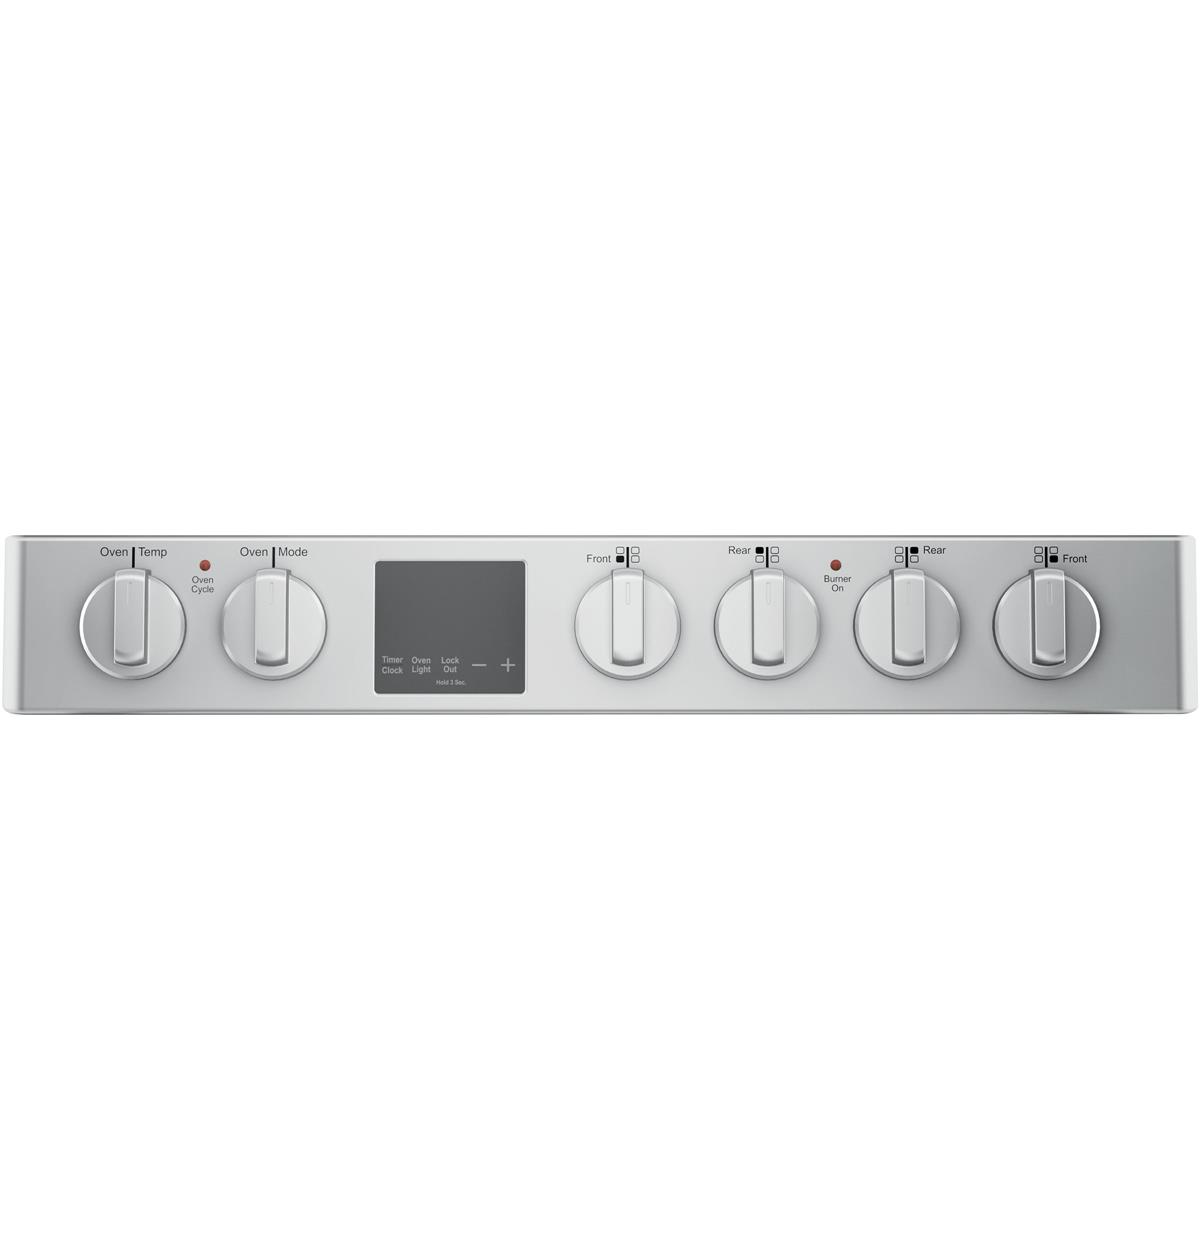 Stainless Free Standing Ranges QAS740RMSS Control Panel